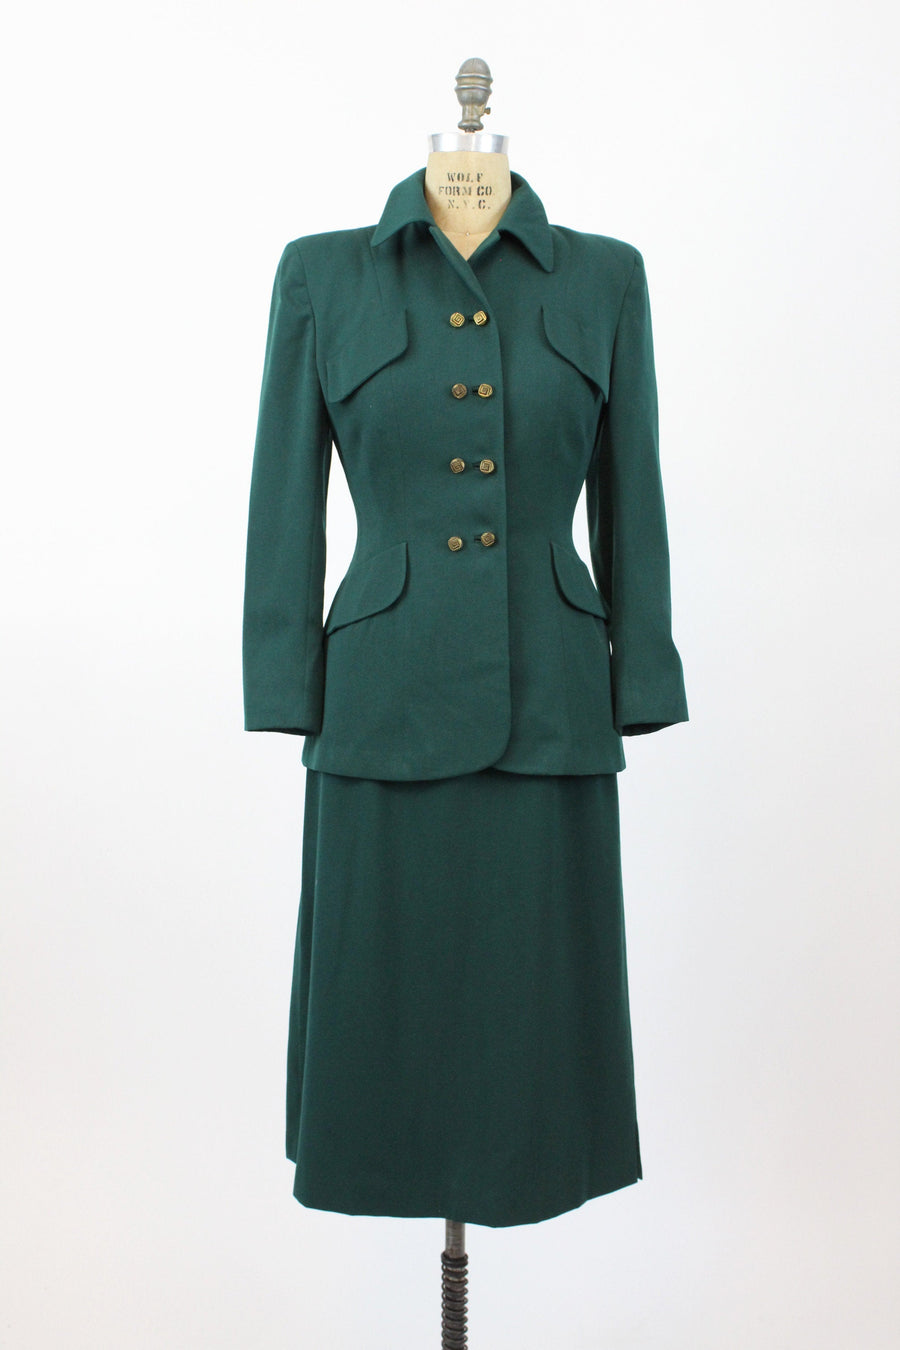 1940s hunter green wool suit small | vintage fitted jacket and skirt | new in